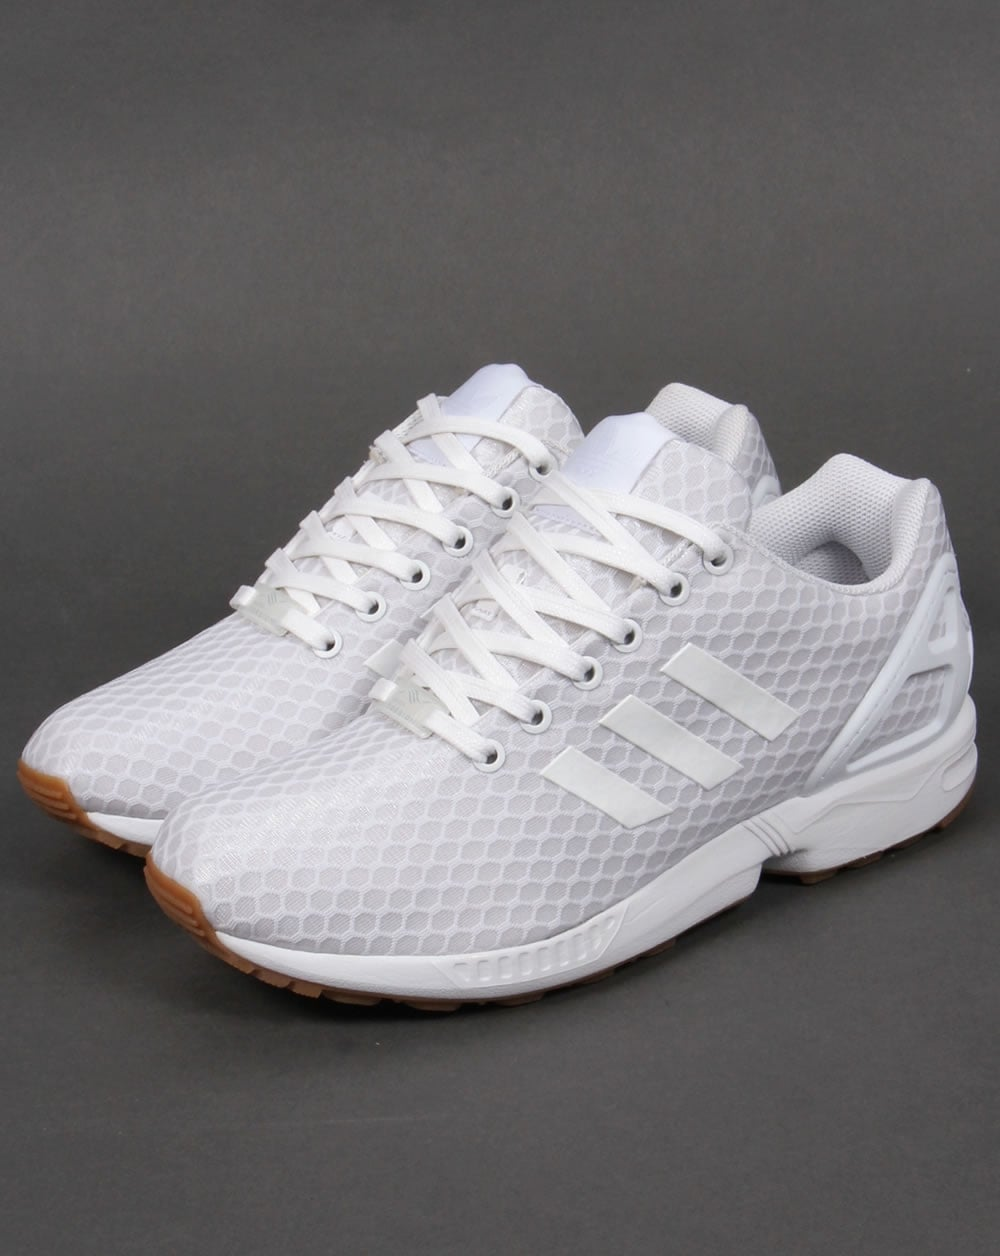 23da5d6b35195 Adidas Zx Flux Black N White wallbank-lfc.co.uk